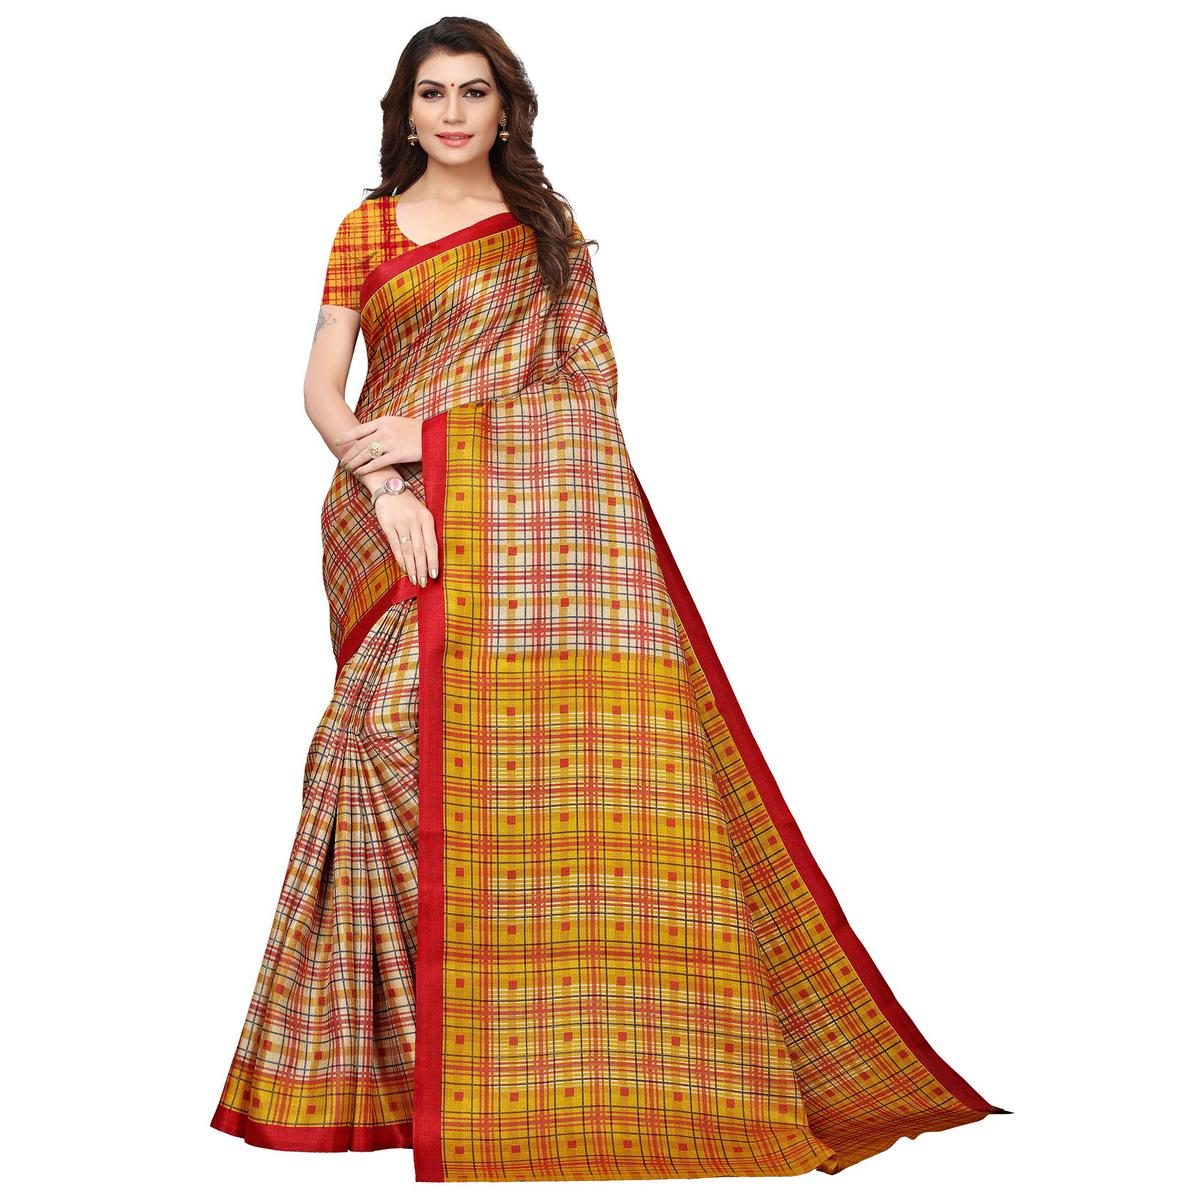 Blissful Beige-Yellow Colored Festive Wear Printed Khadi Silk Saree